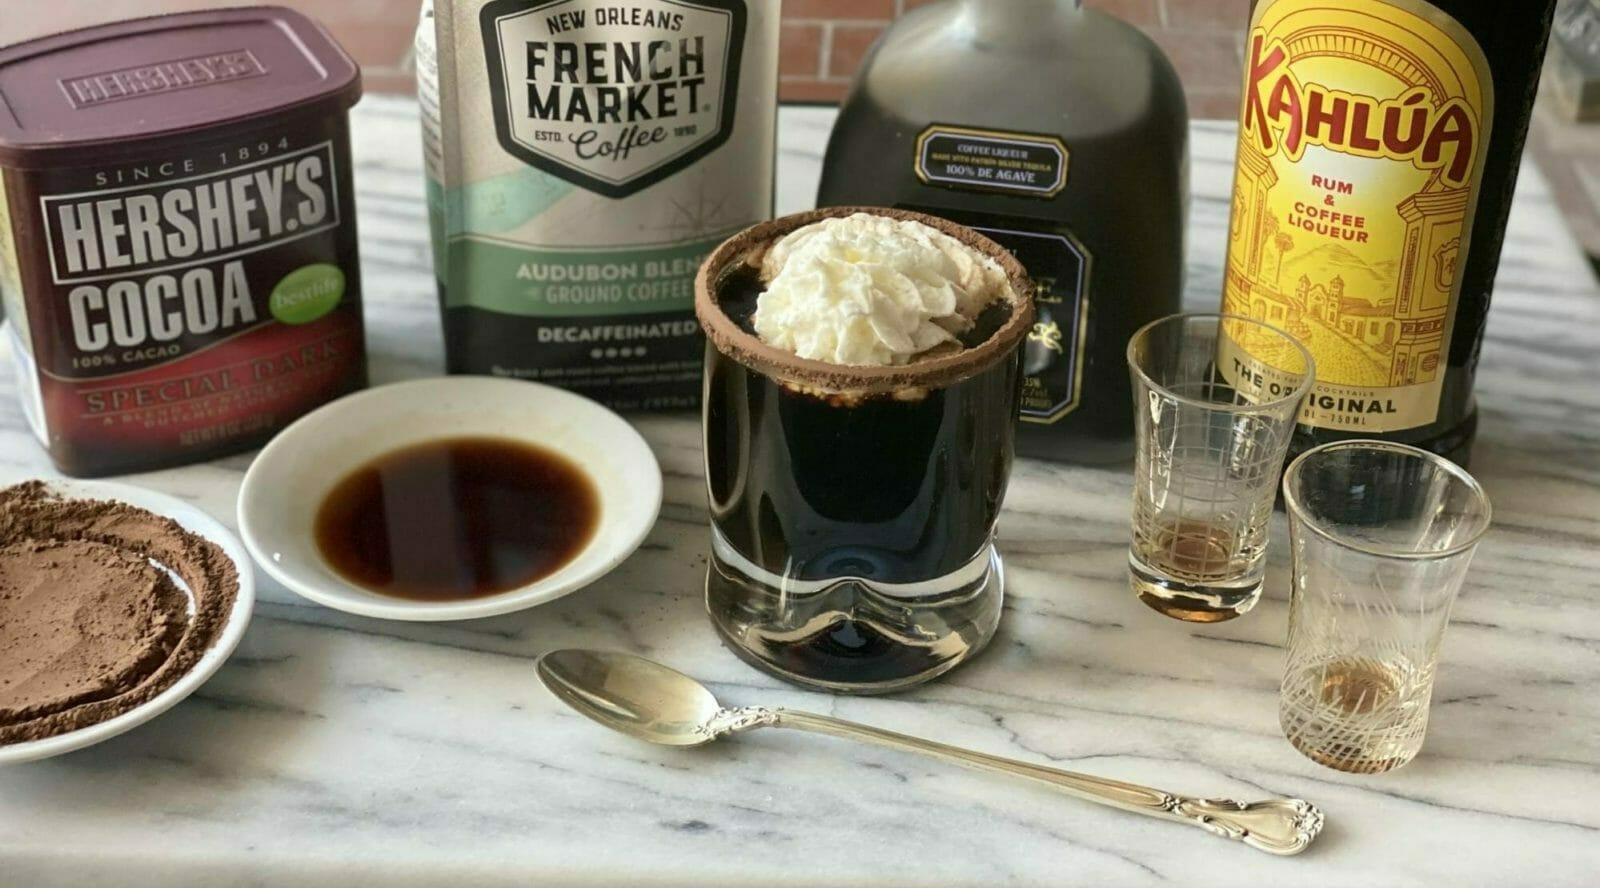 French Market Hot Toddy